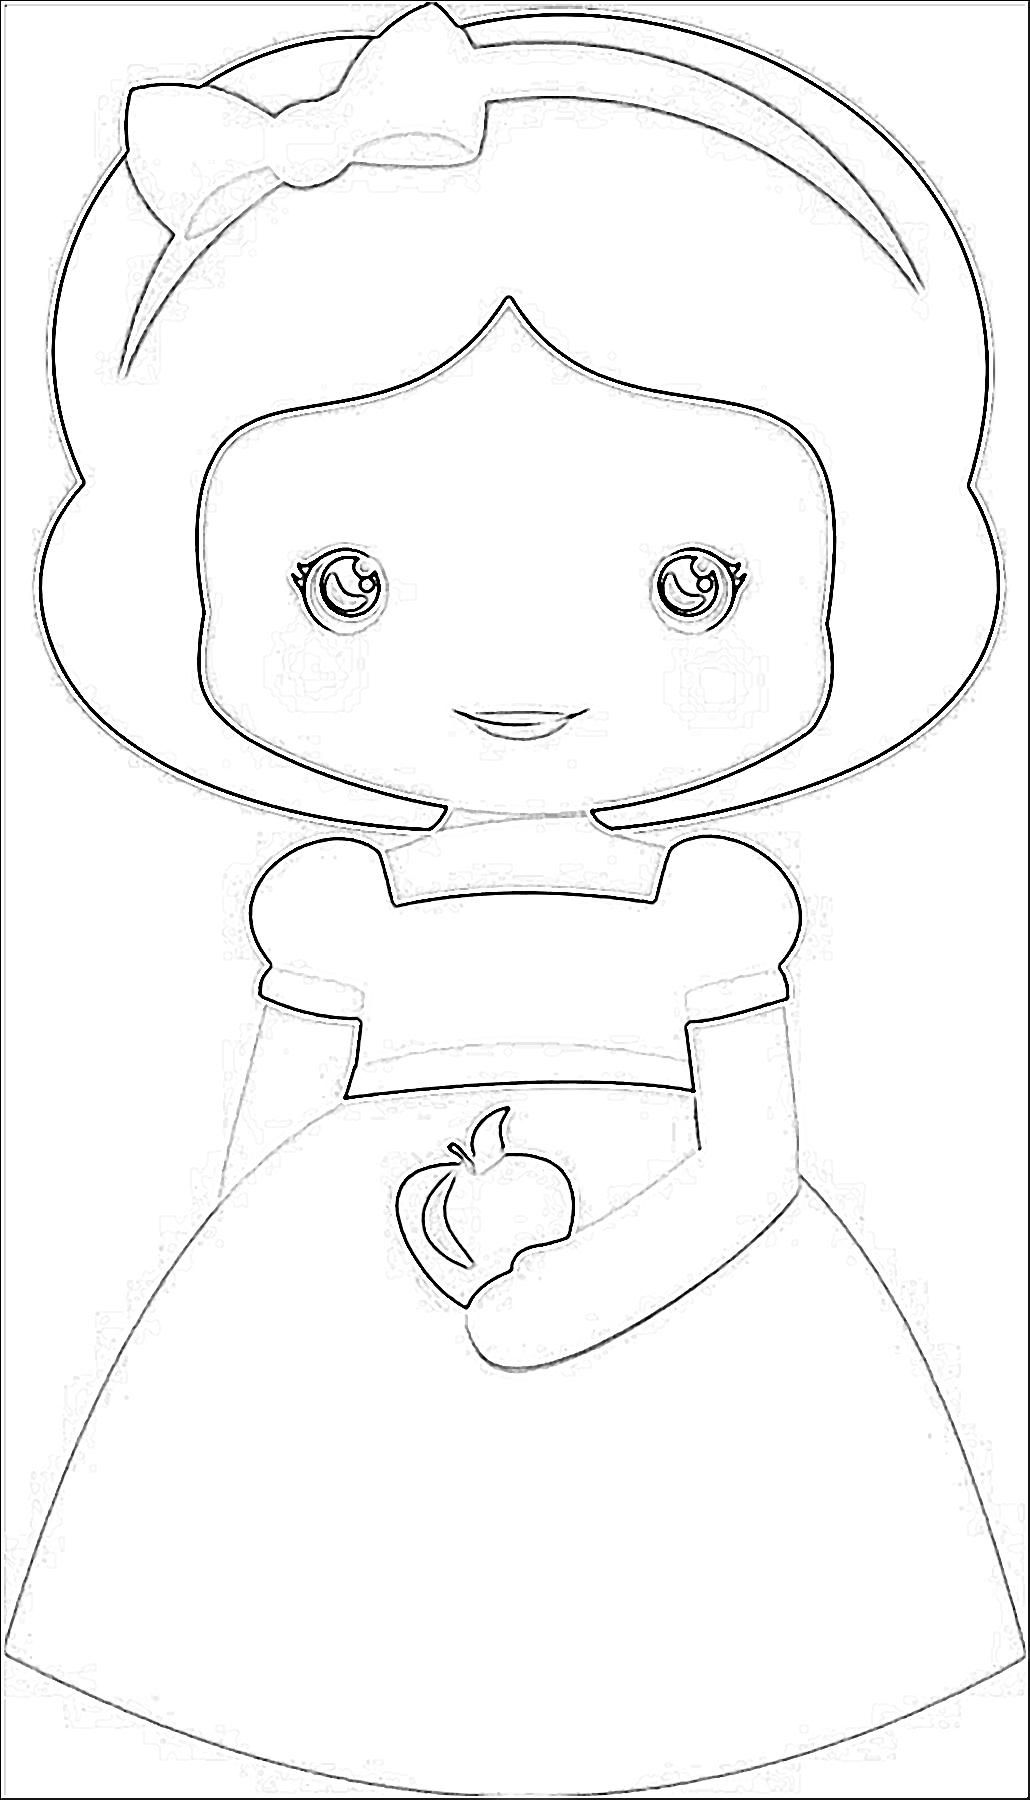 Online tool to create sketch painting drawing outline effects